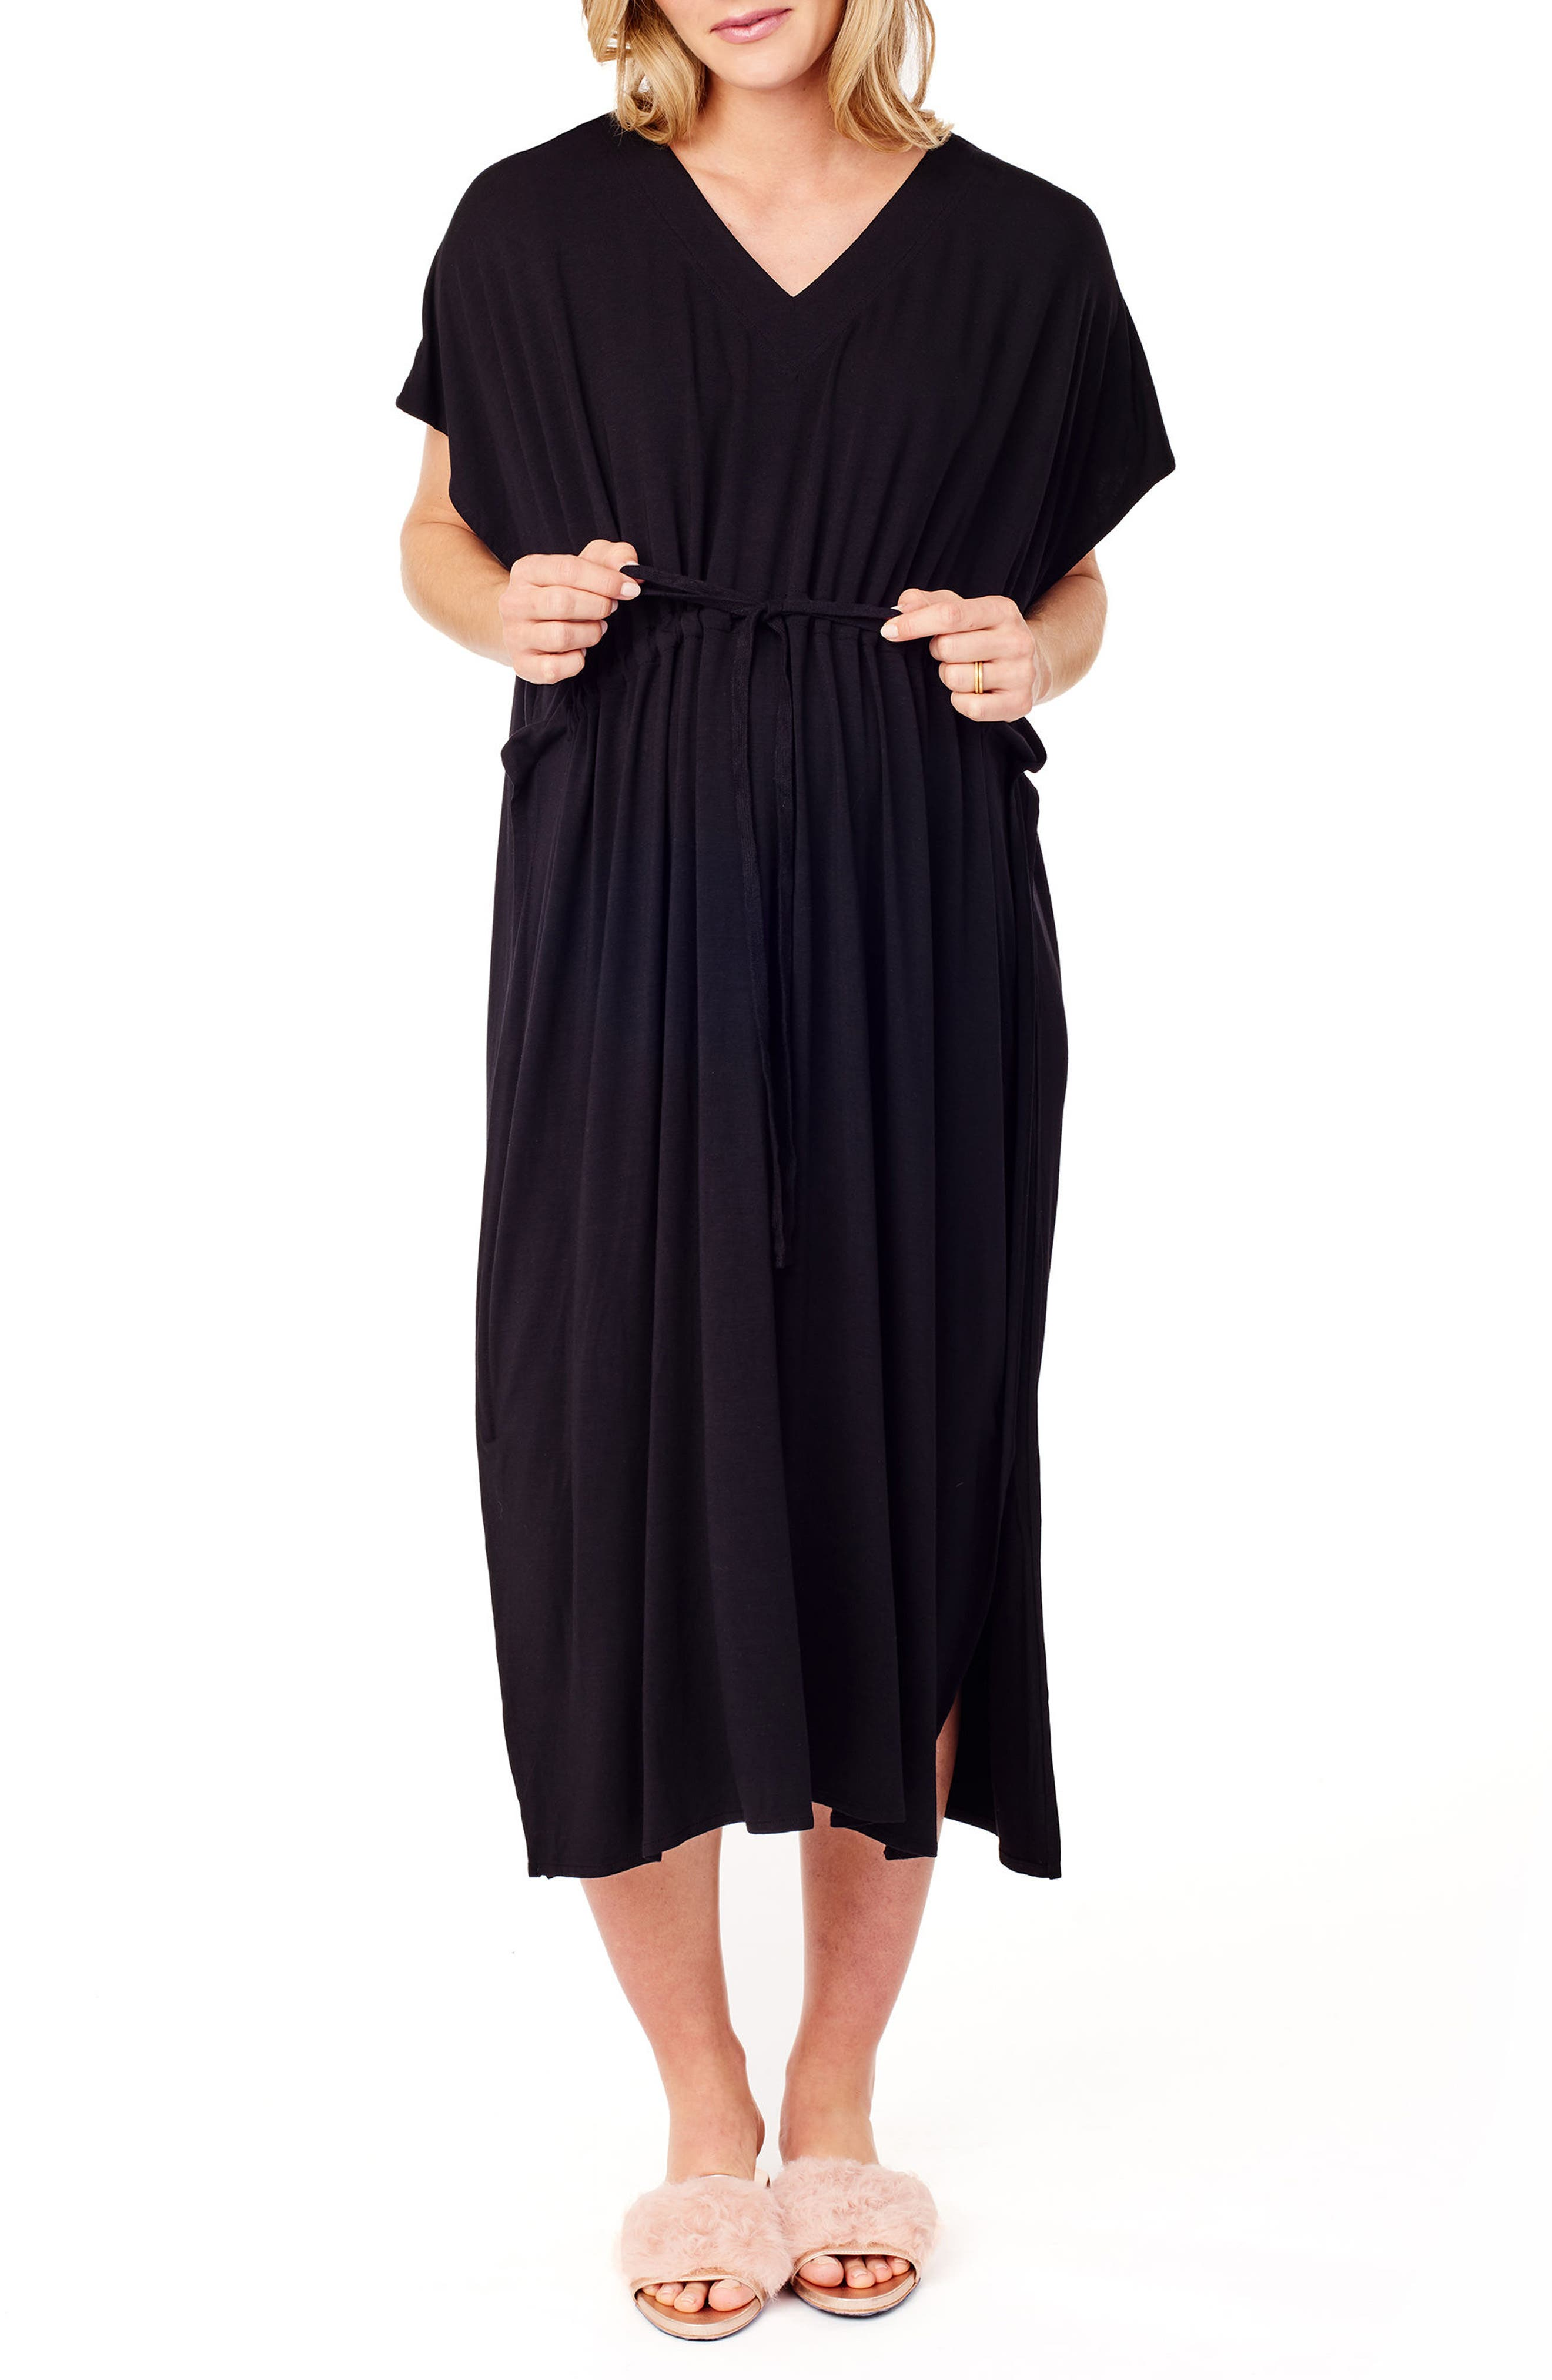 Ingrid & Isabel® x James Fox & Co. Maternity/Nursing Hospital Gown